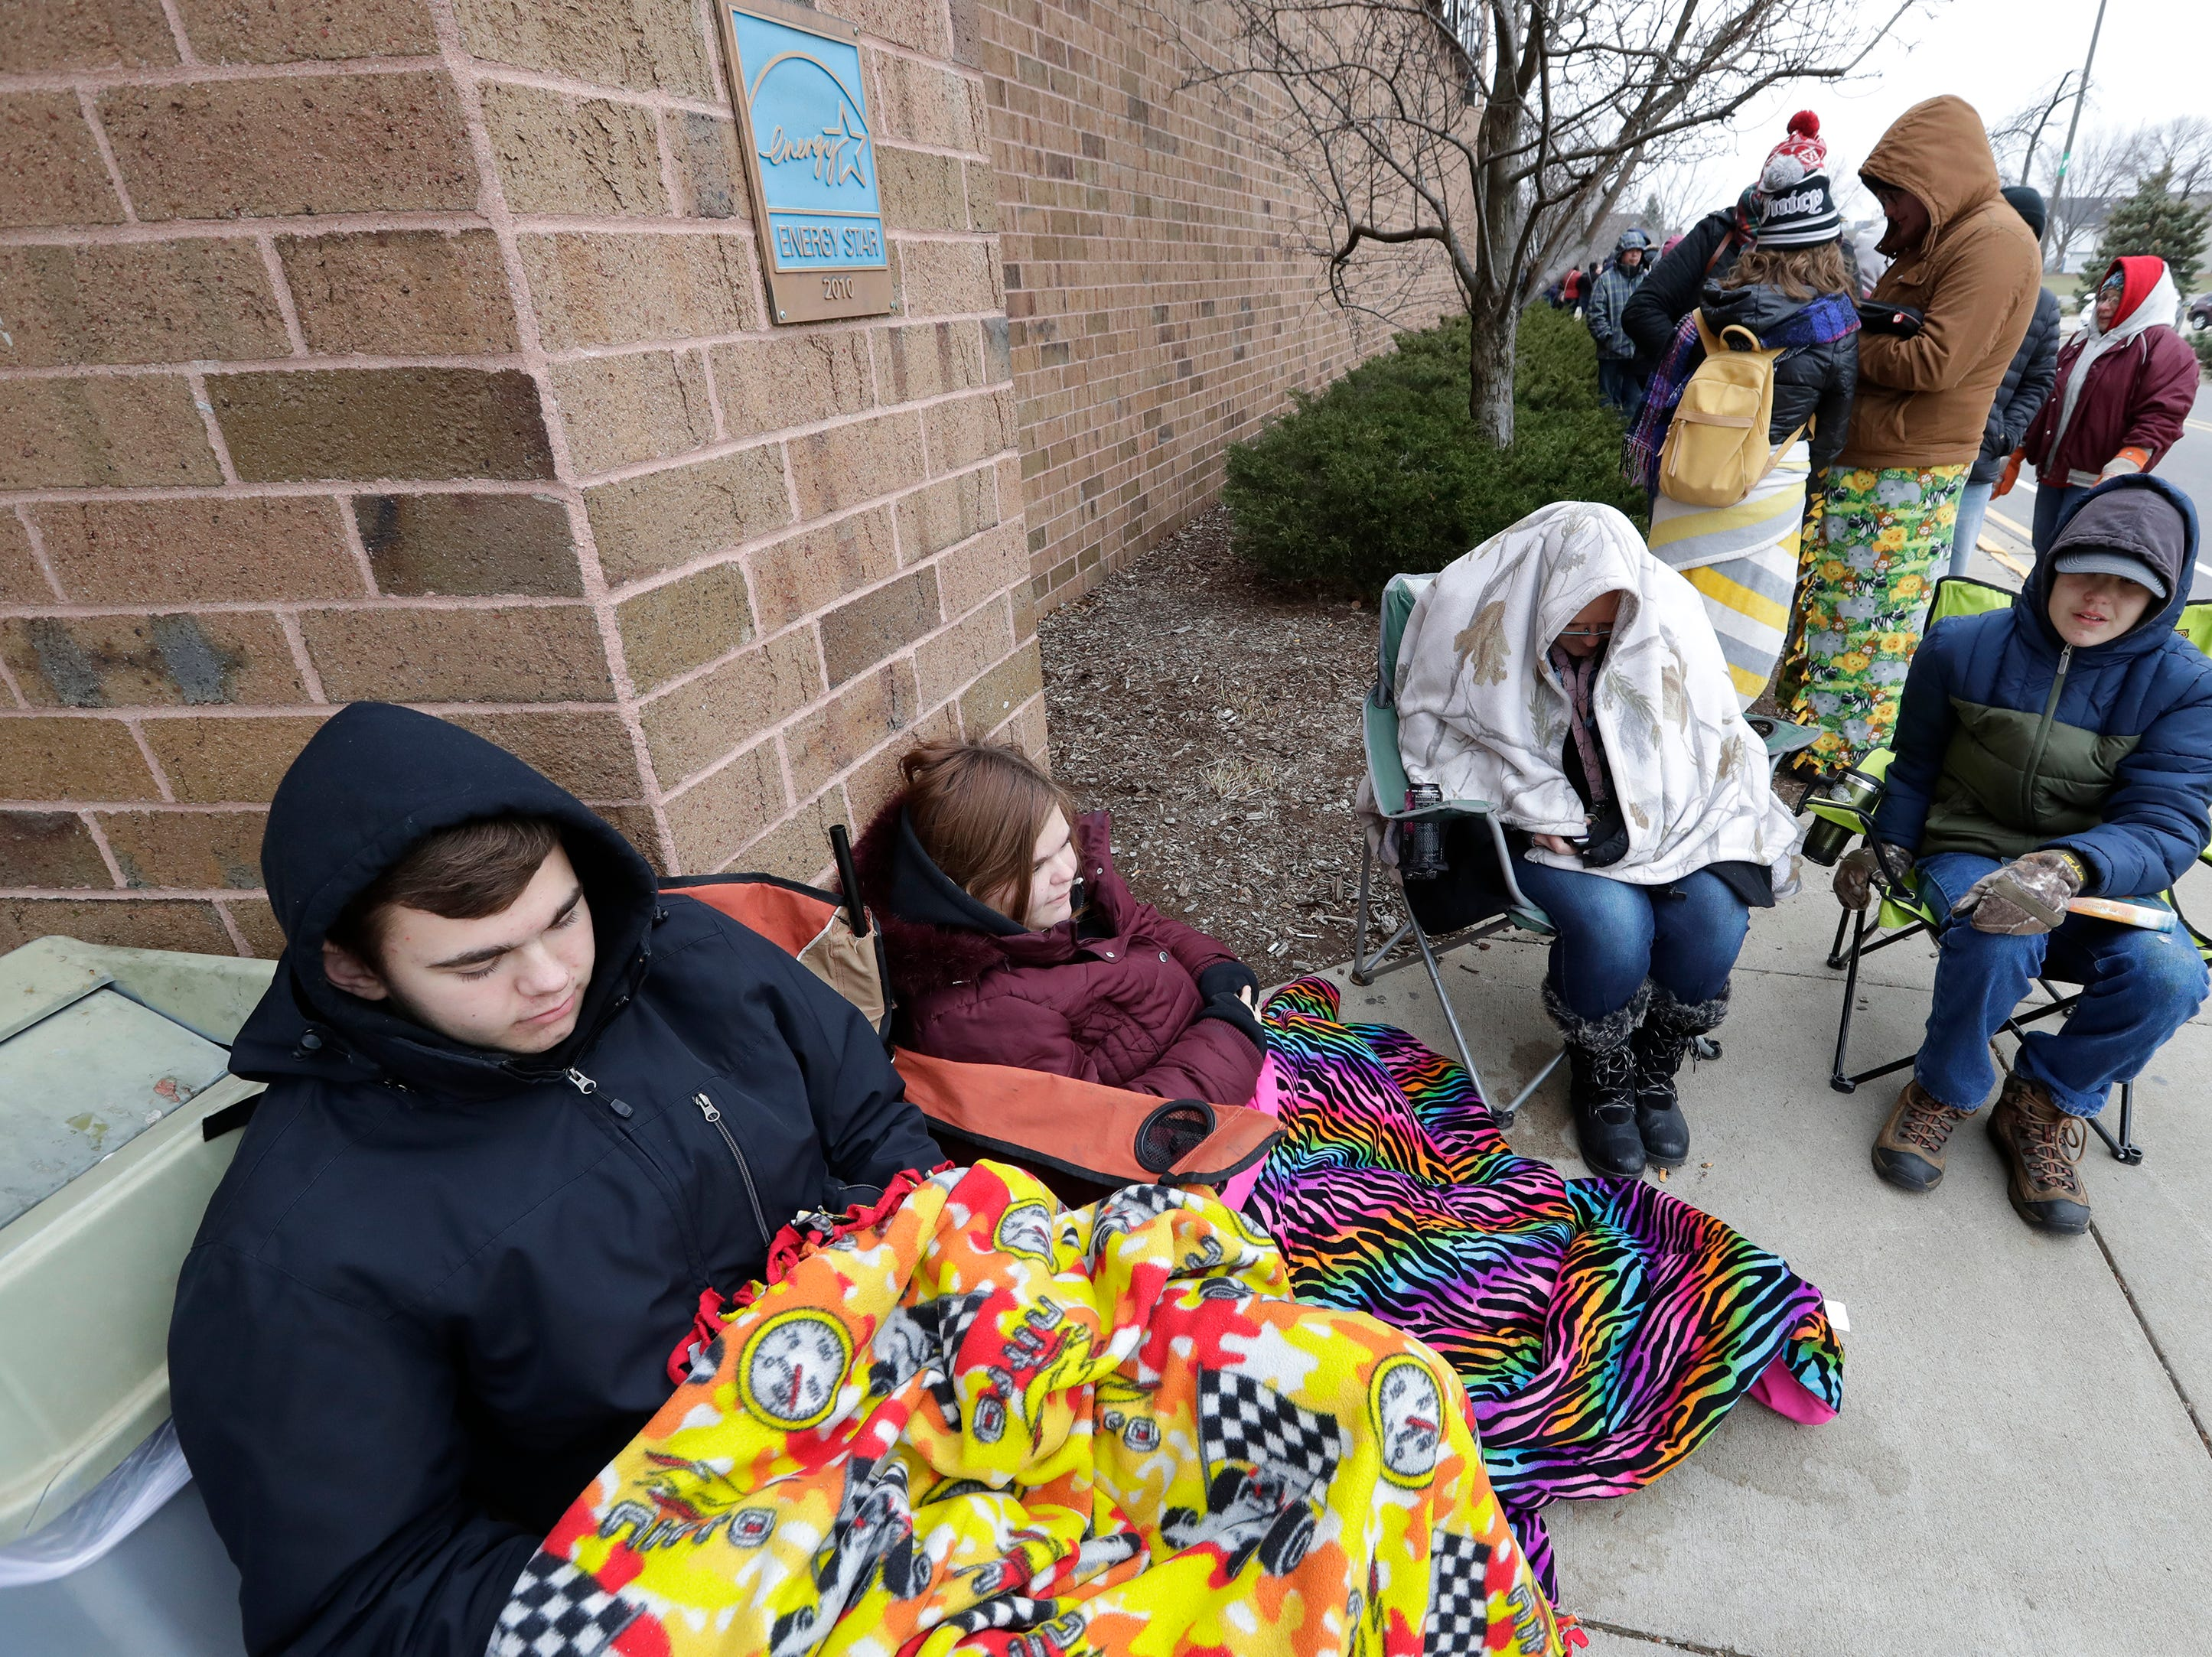 Devon Hajenga, left, Tasha Hajenga, Cindy Kronberg and Dennis Hajenga, right, try to stay warm while waiting in line for JCPenney to open for Black Friday deals Thursday, November 22, 2018, in Grand Chute, Wis. Kronberg is the mother of the three children and all are from Kaukauna.